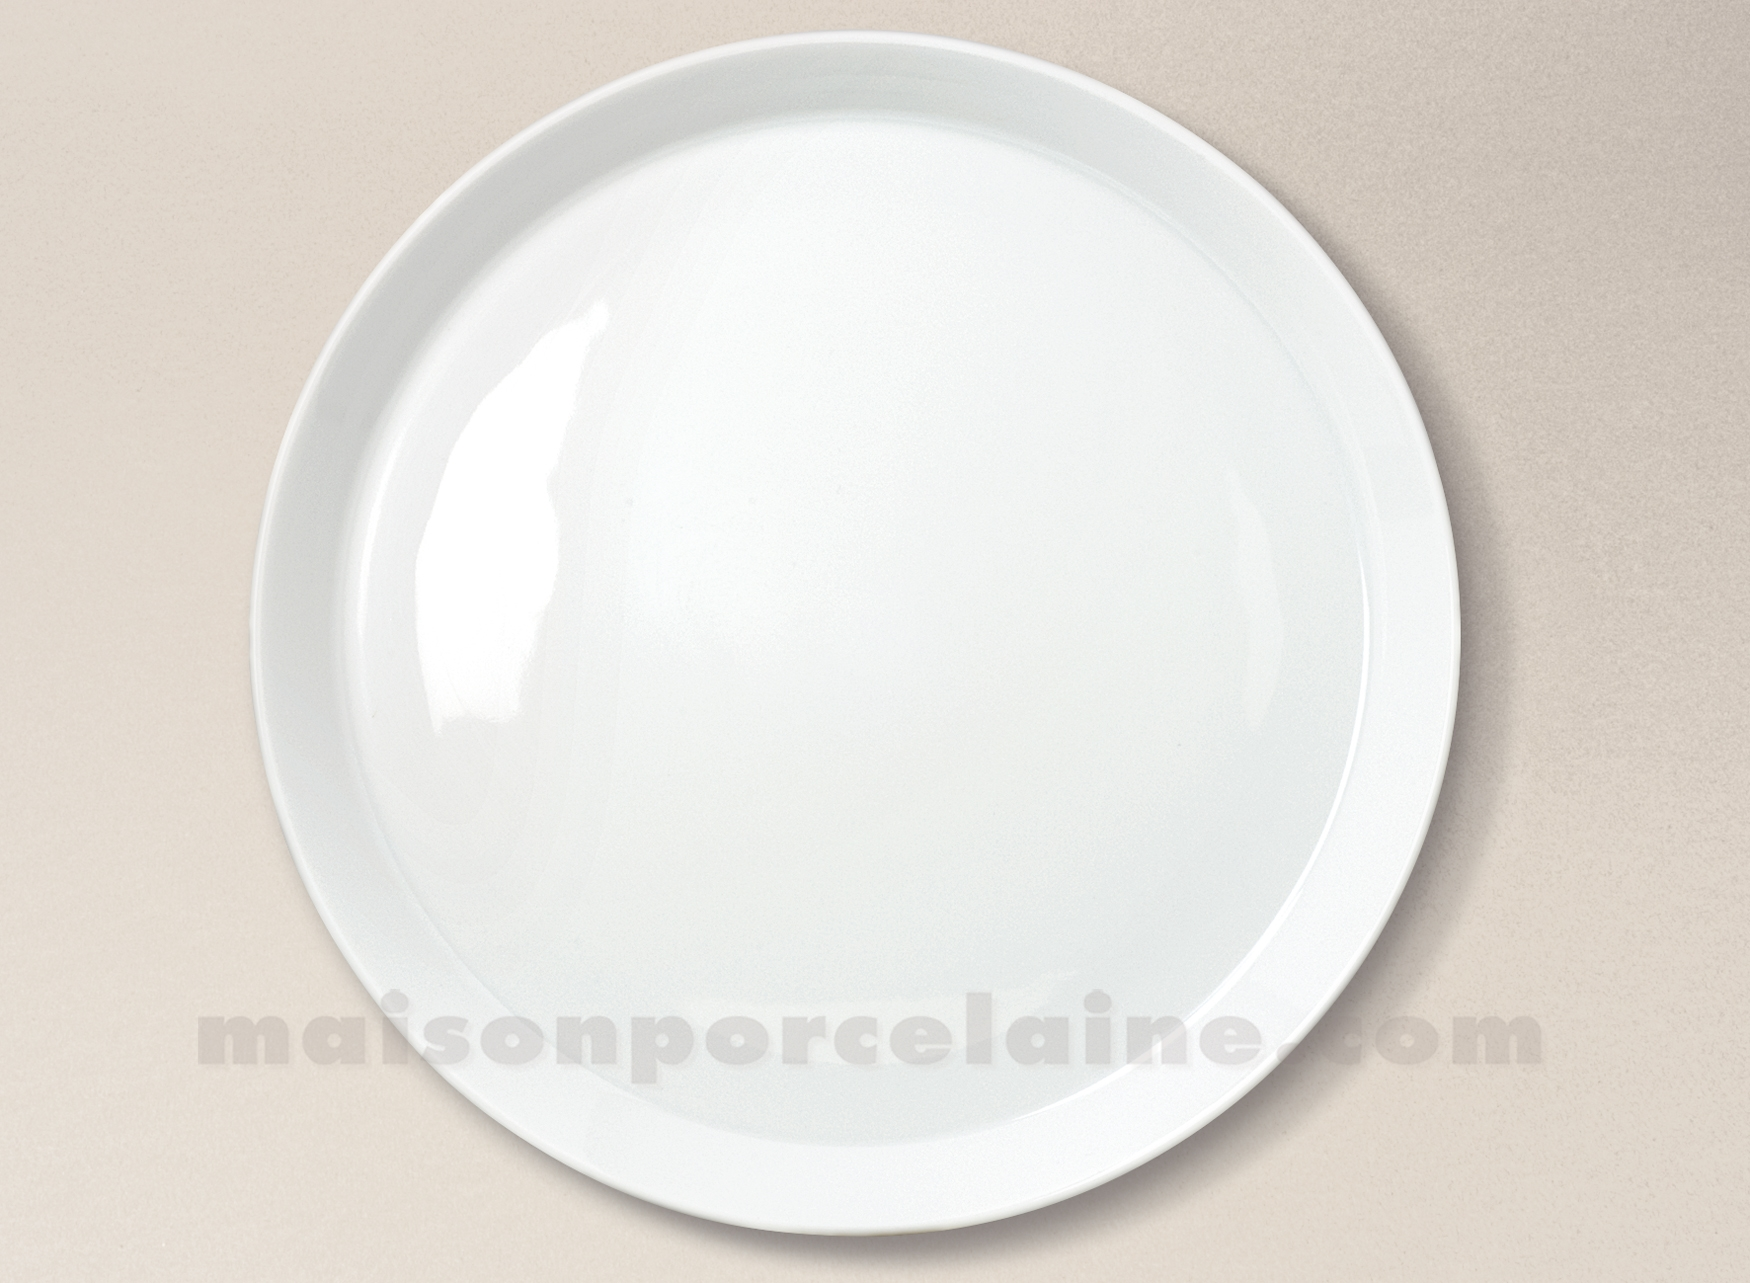 assiette plate porcelaine blanche trendy d26 maison de la porcelaine. Black Bedroom Furniture Sets. Home Design Ideas